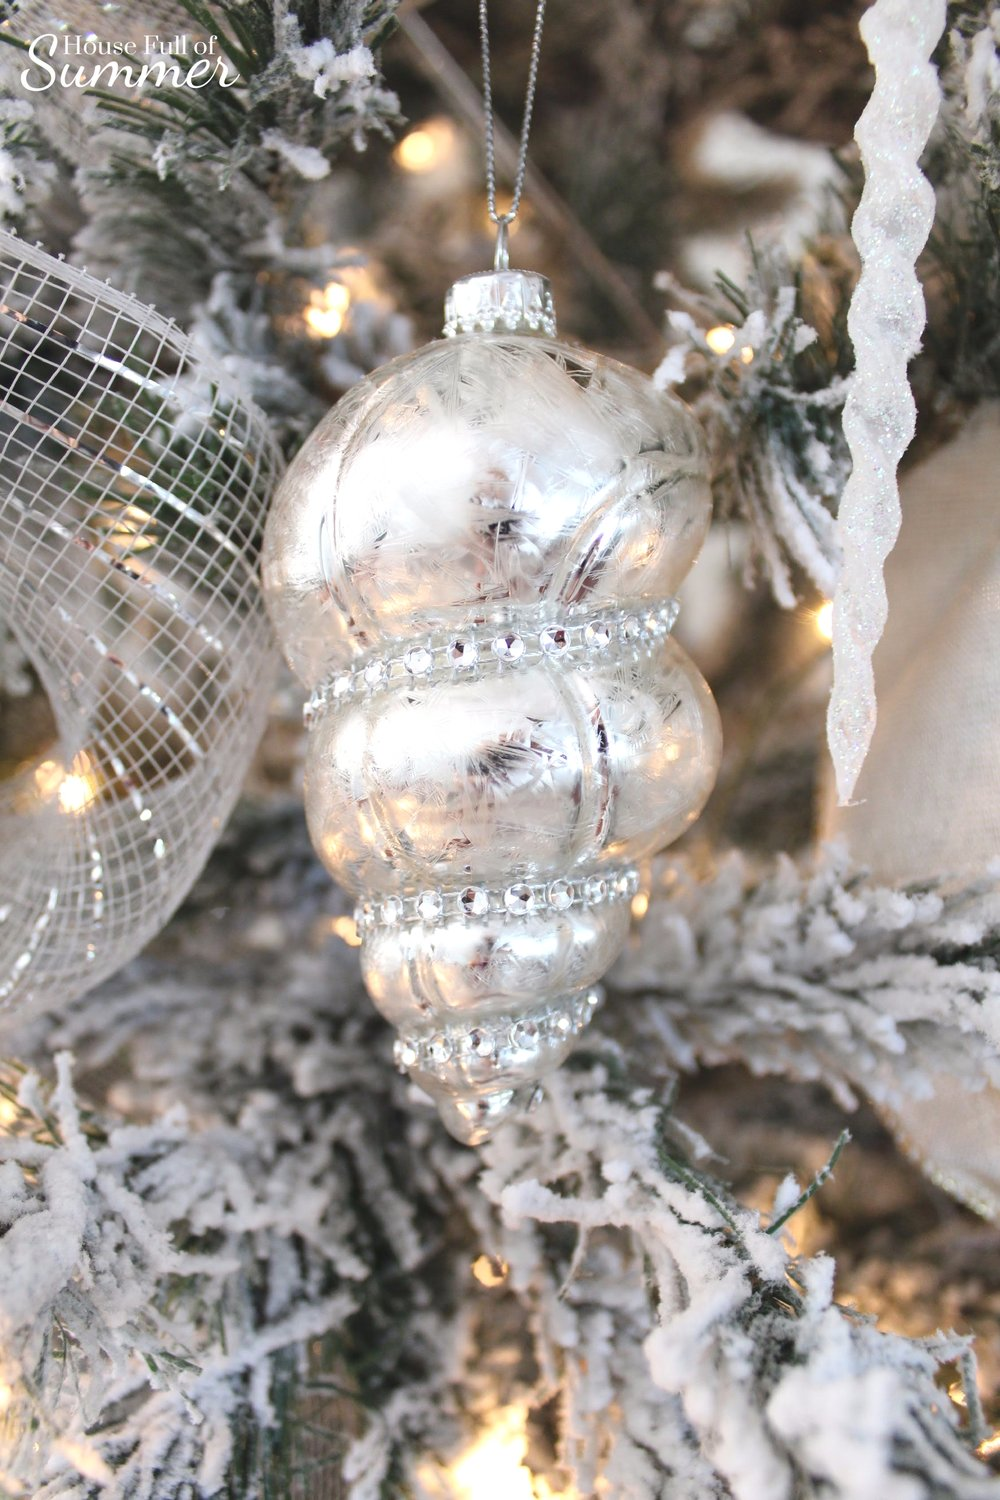 creating a glam coastal christmas with bealls florida house full of summer blog neutral - Coastal Christmas Decor